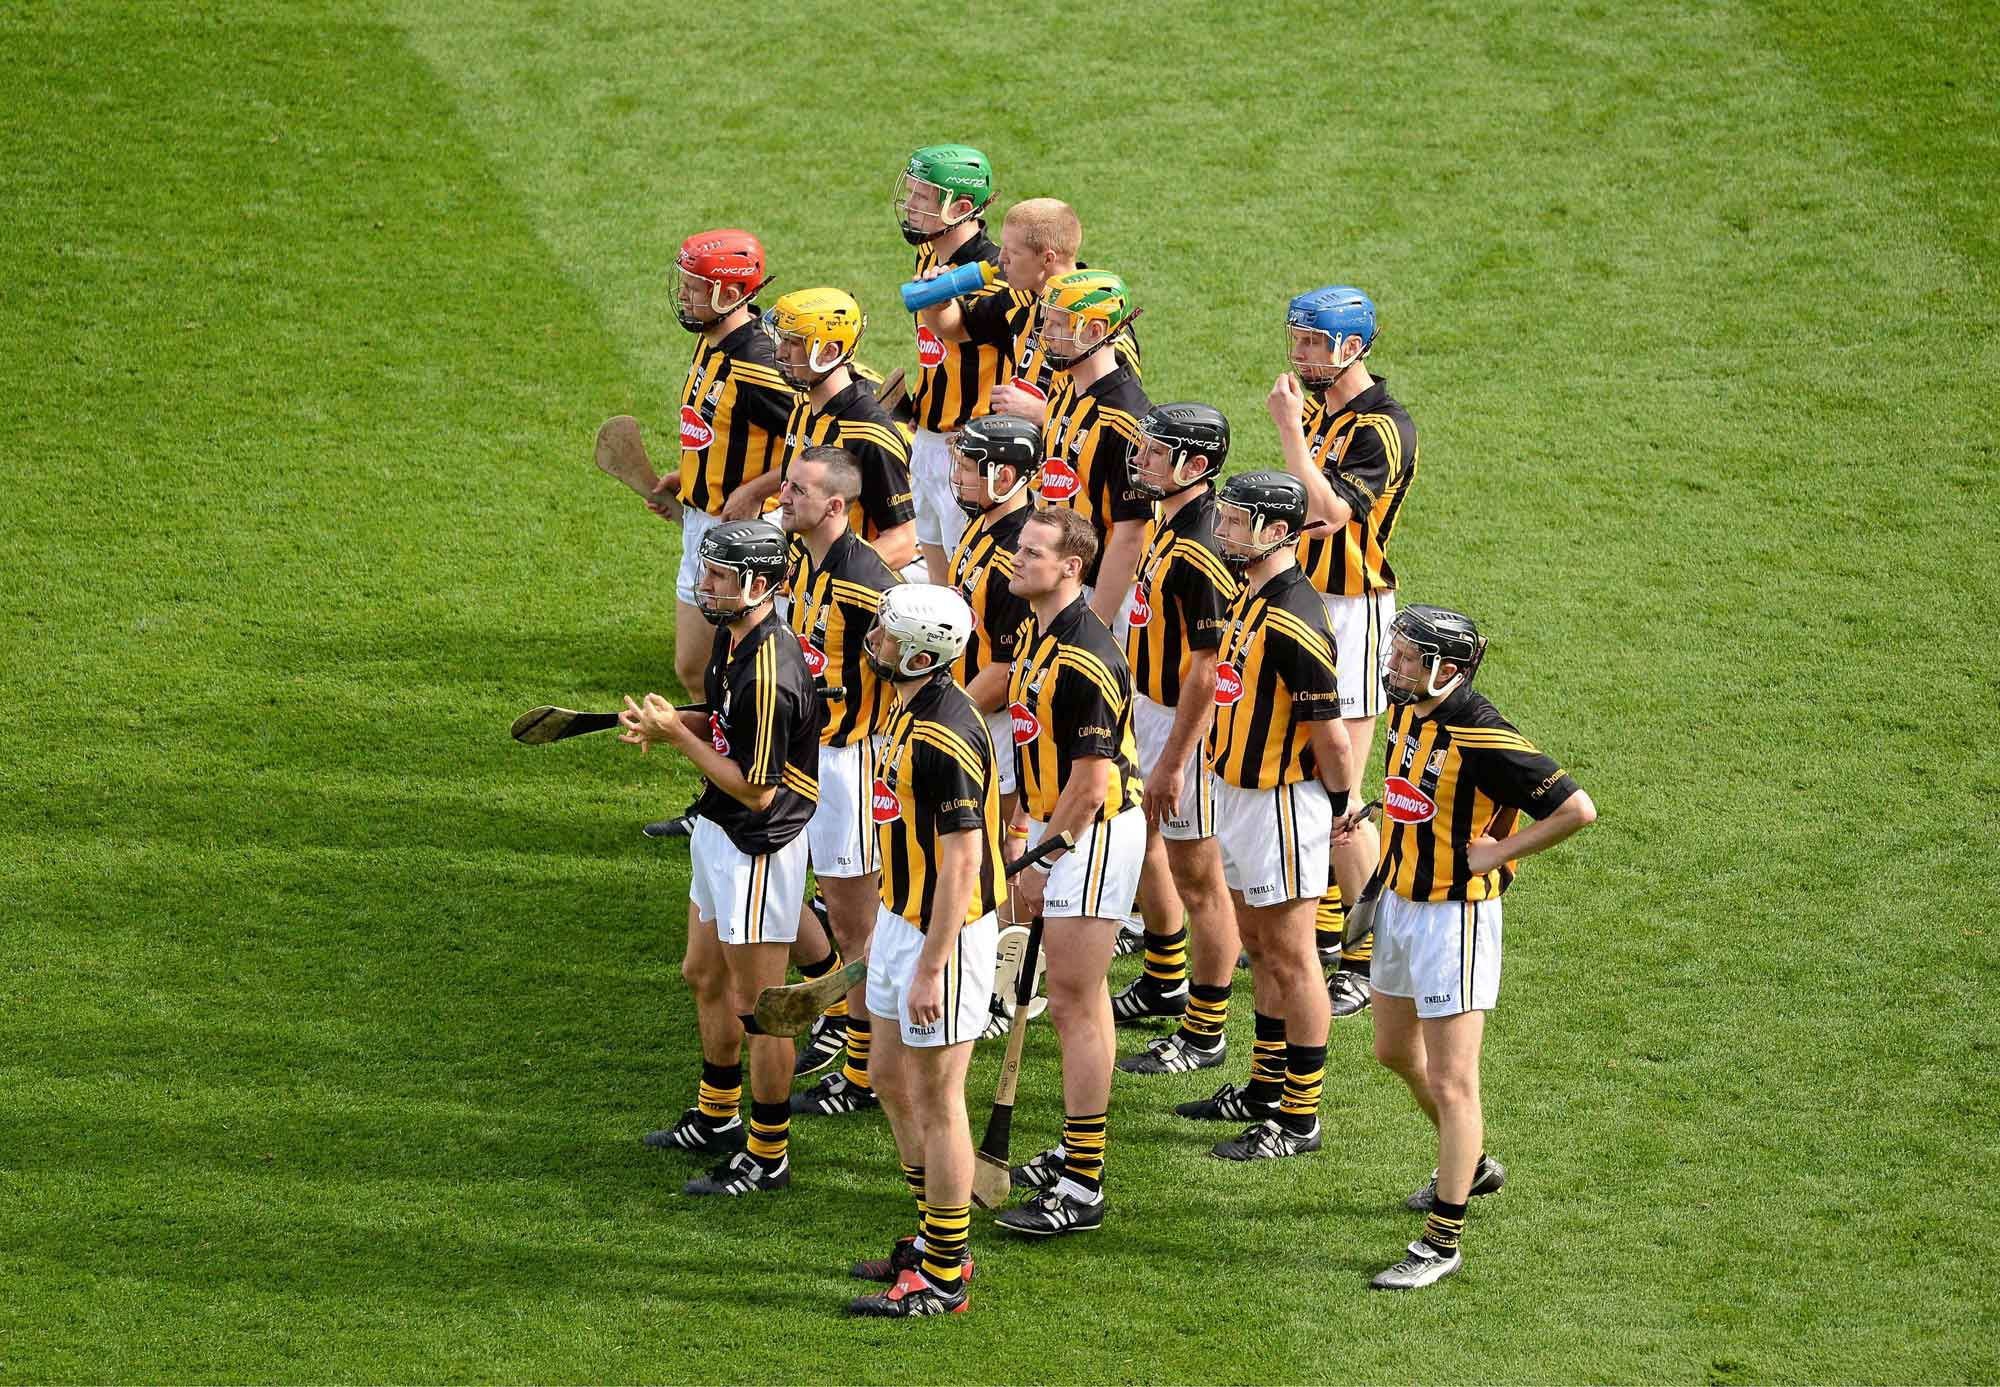 Kilkenny: the making of a hurling tradition